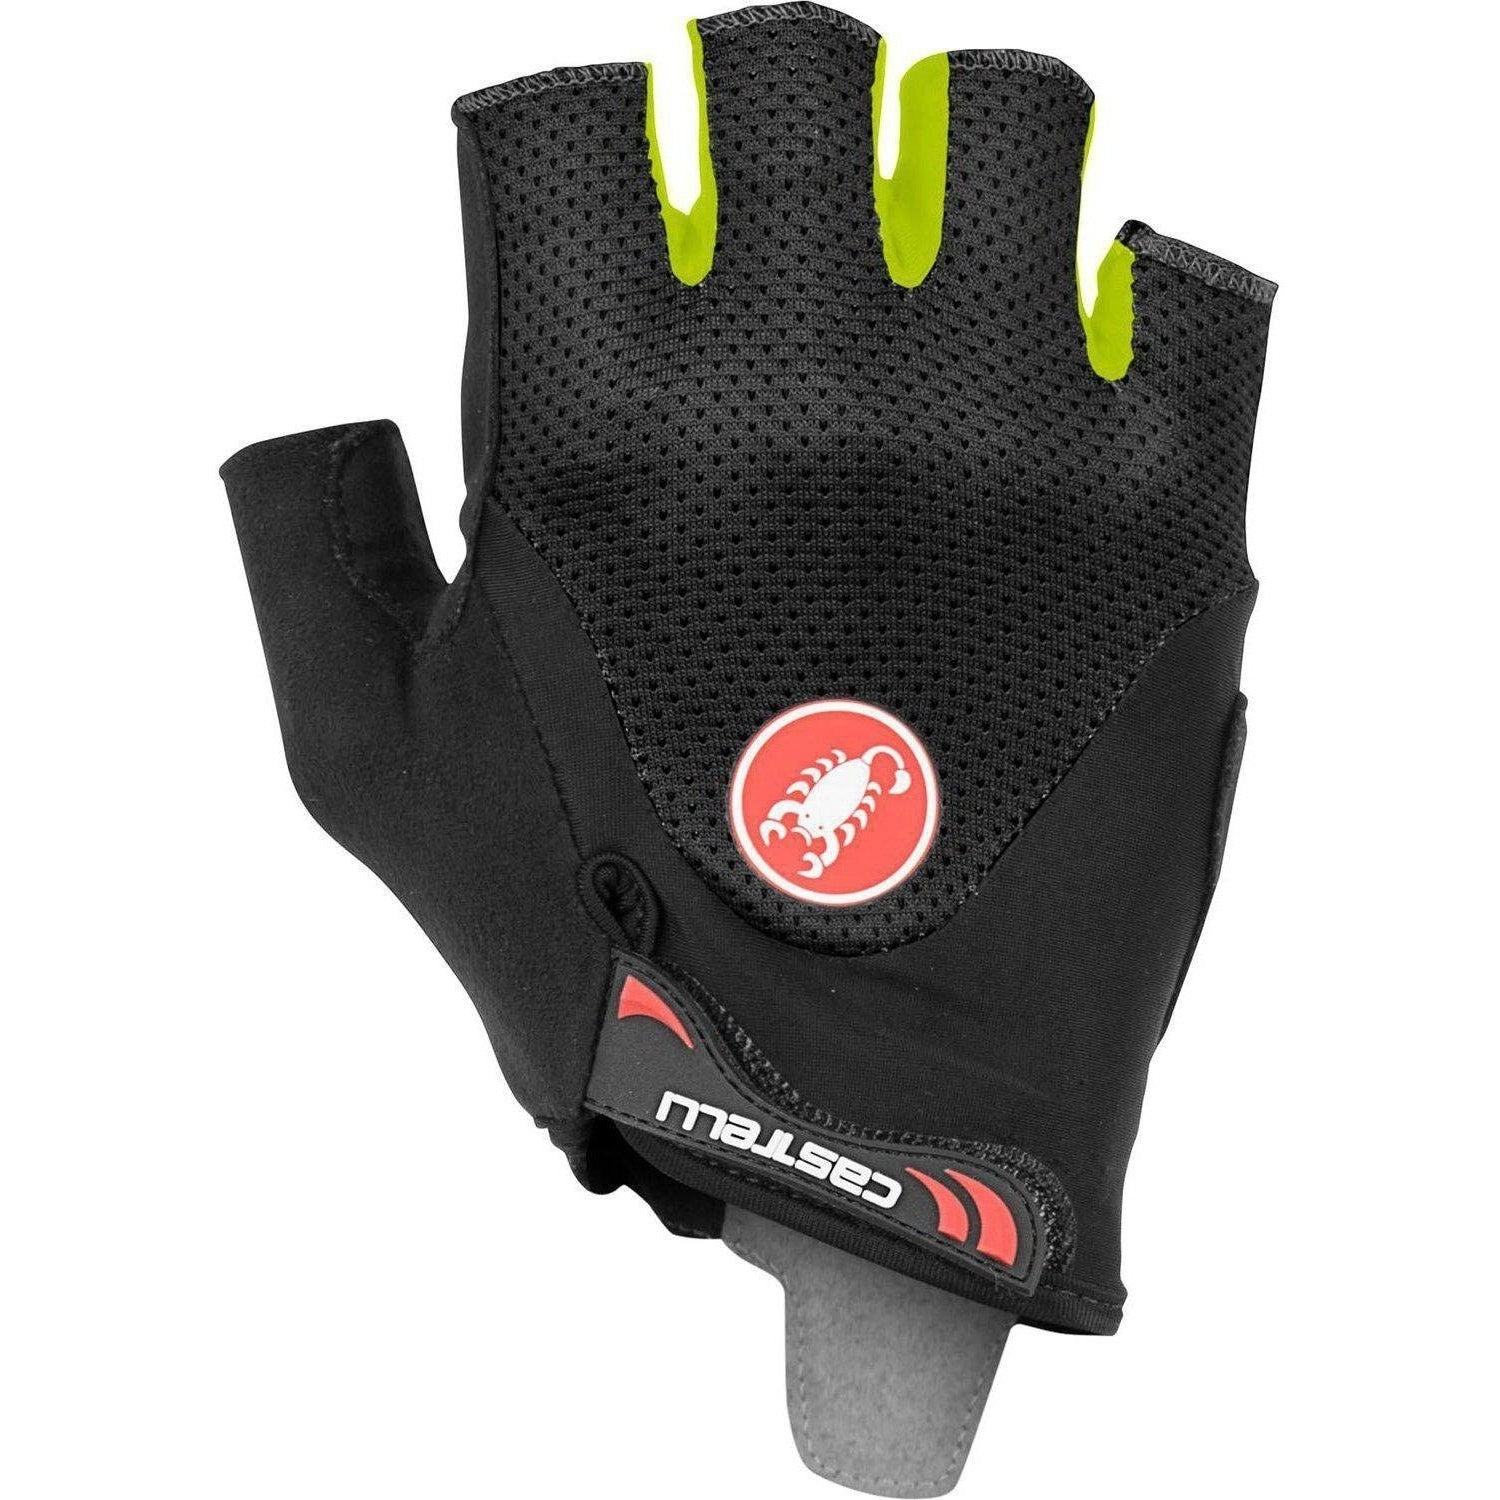 Castelli-Castelli Arenberg Gel 2 Gloves-Black/Yellow Fluo-XS-CS190283211-saddleback-elite-performance-cycling